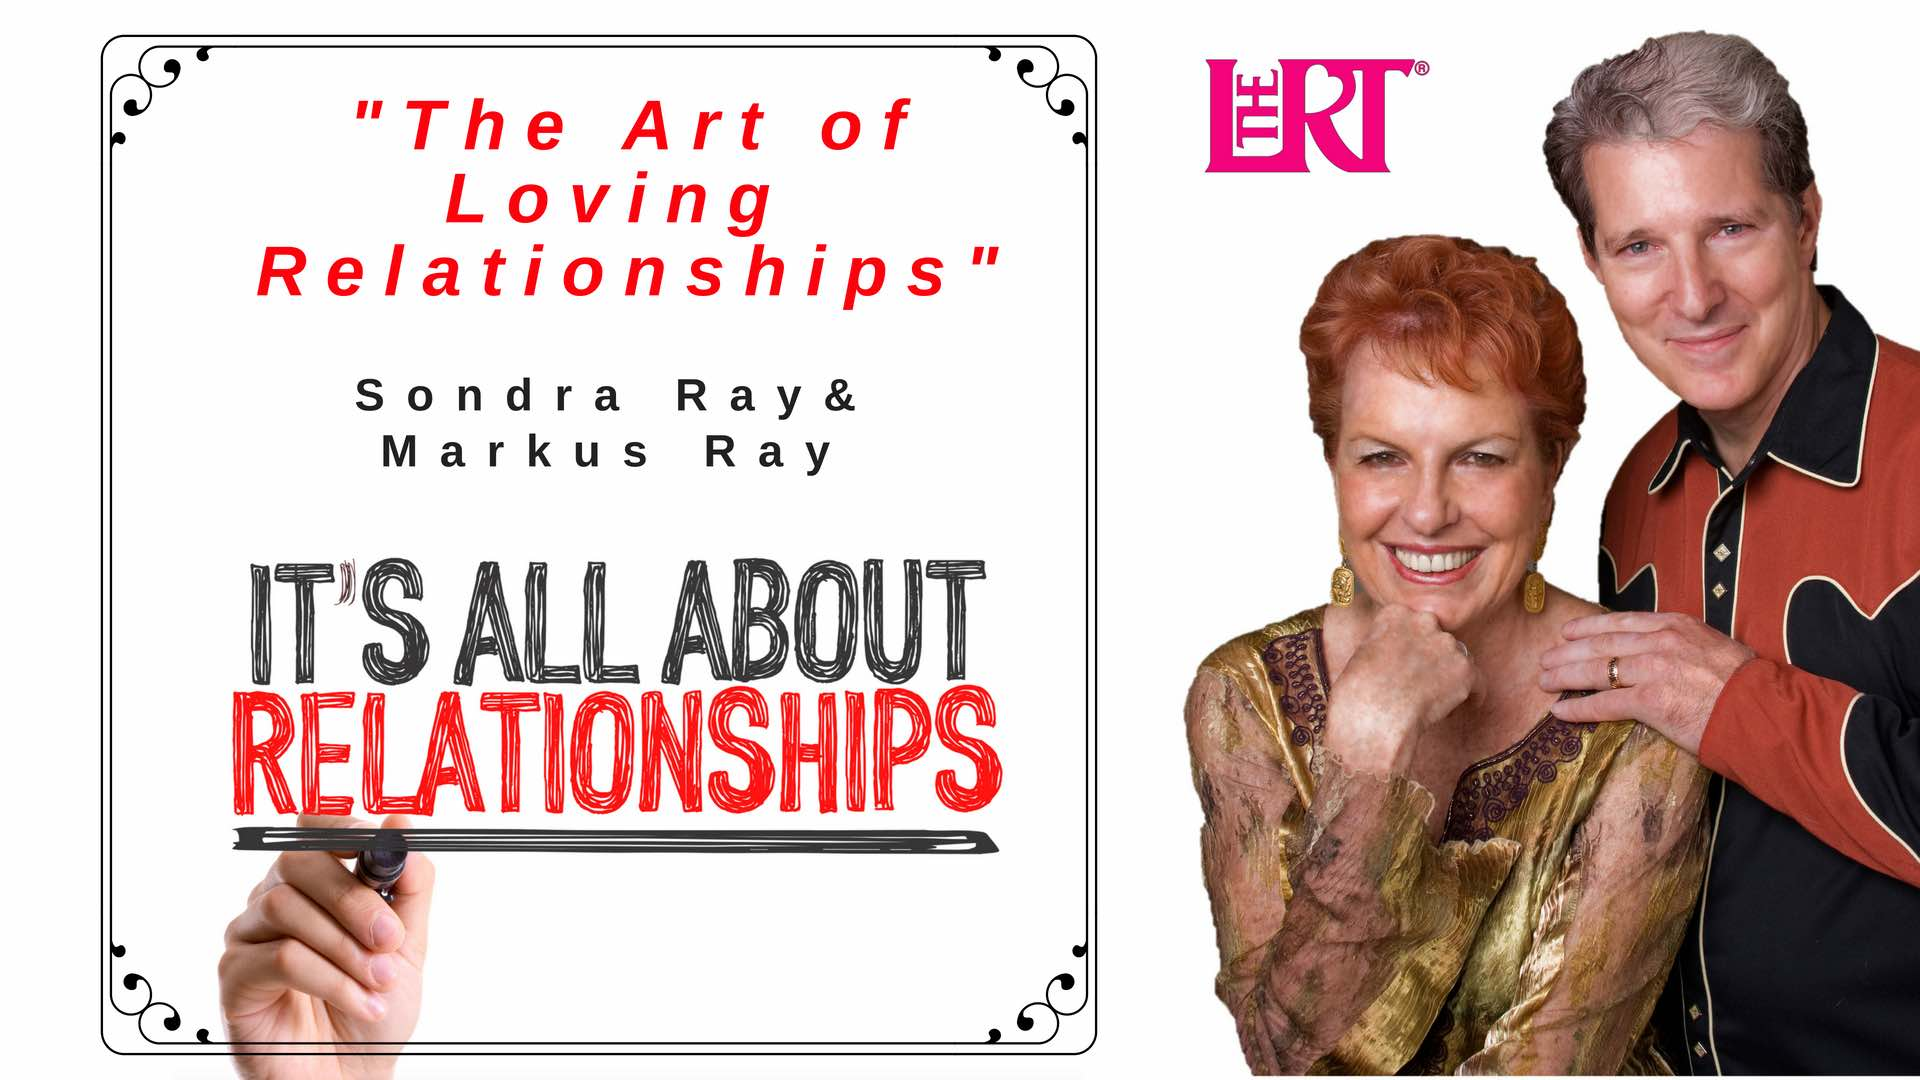 The Art of Loving Relationships